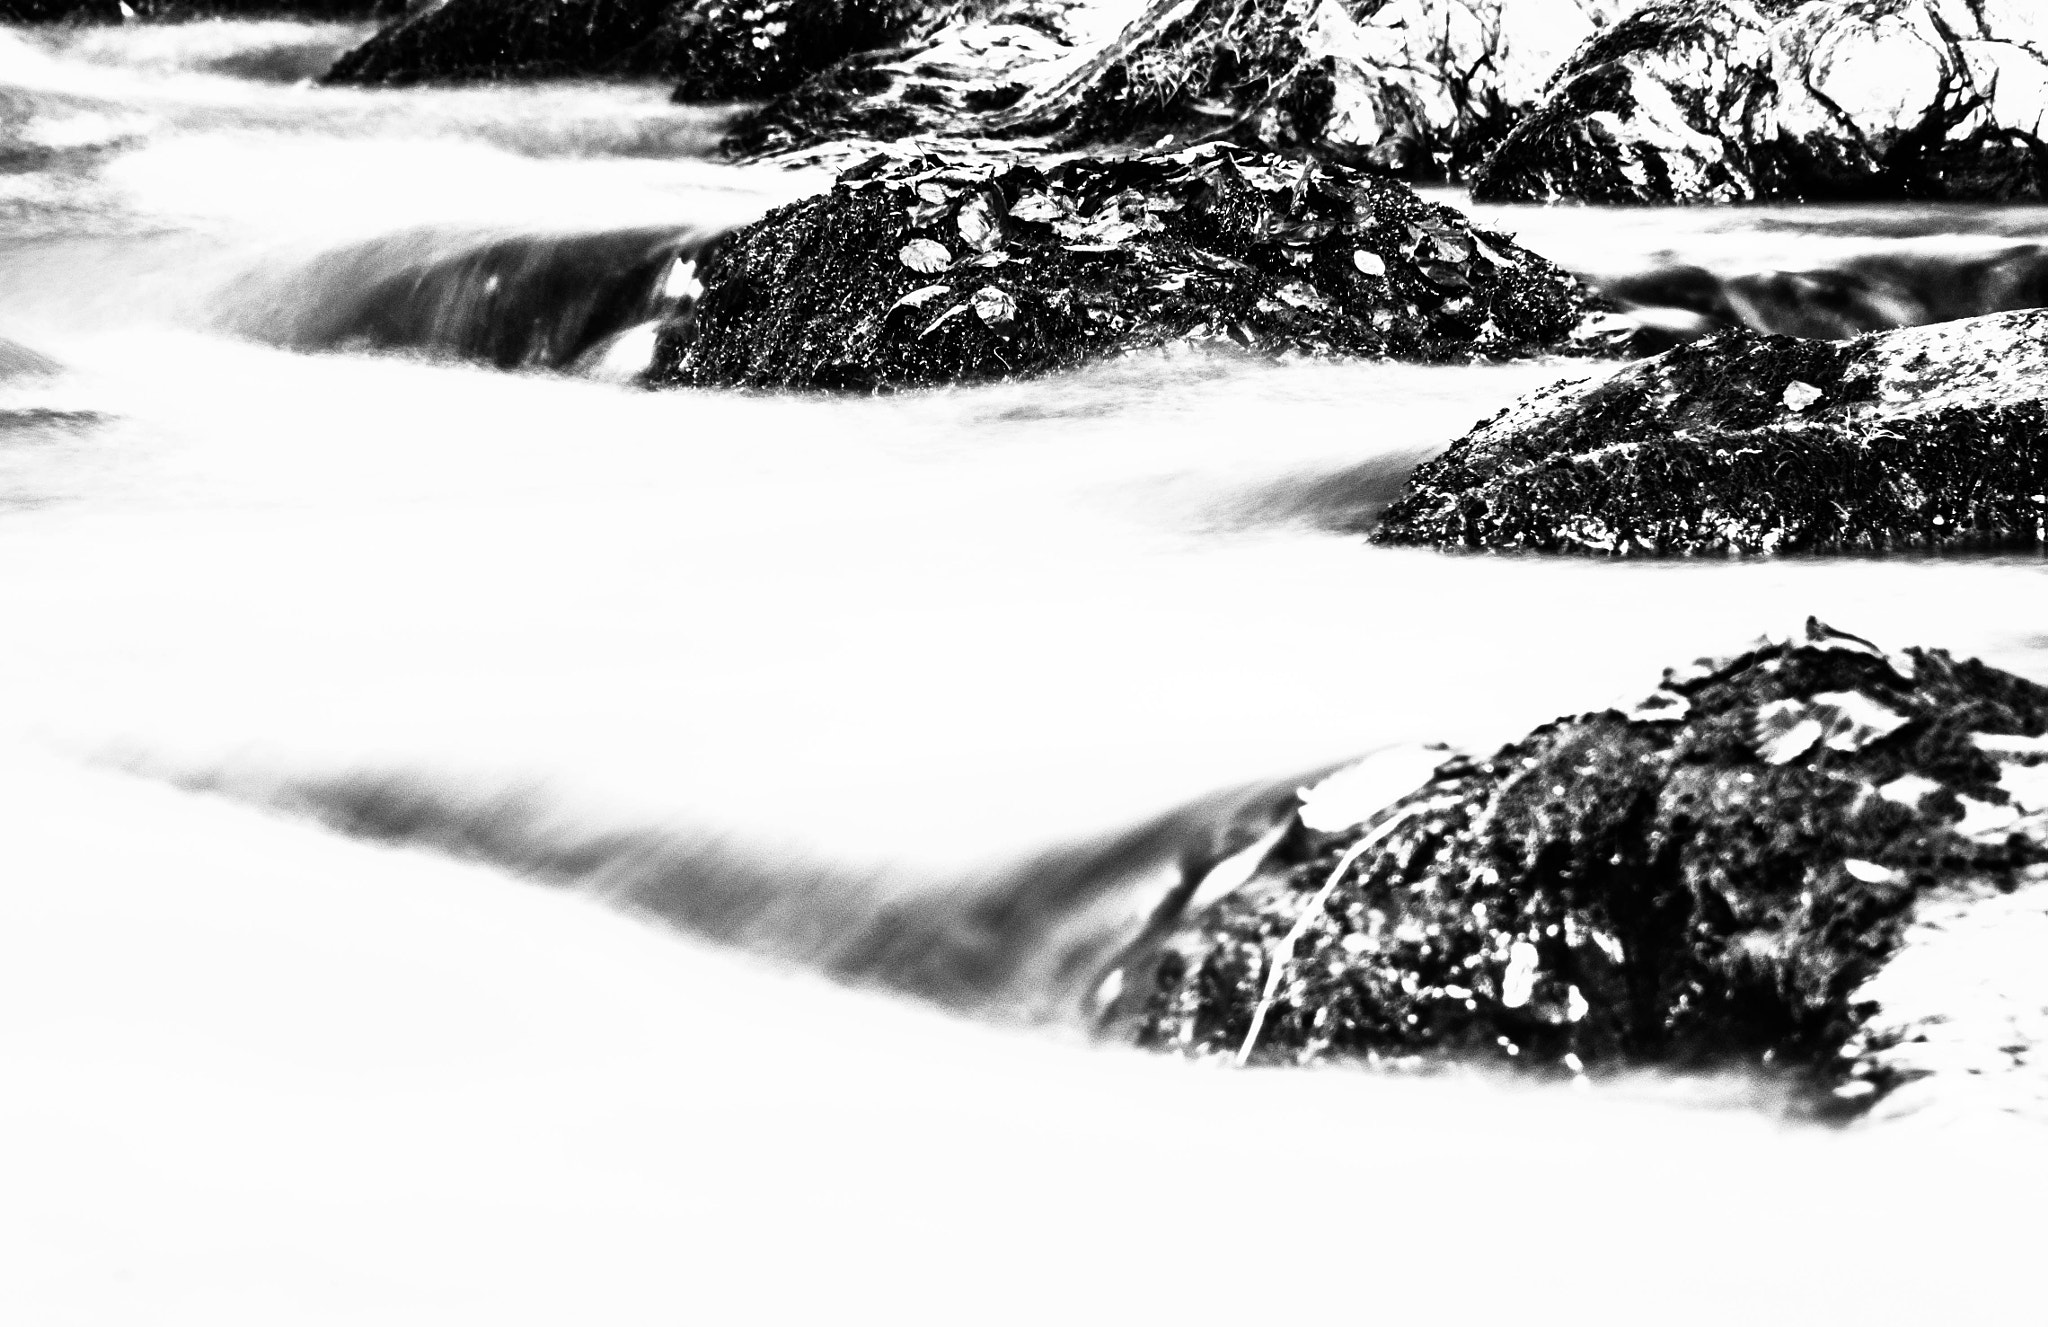 Photograph The river by Lluís Grau on 500px